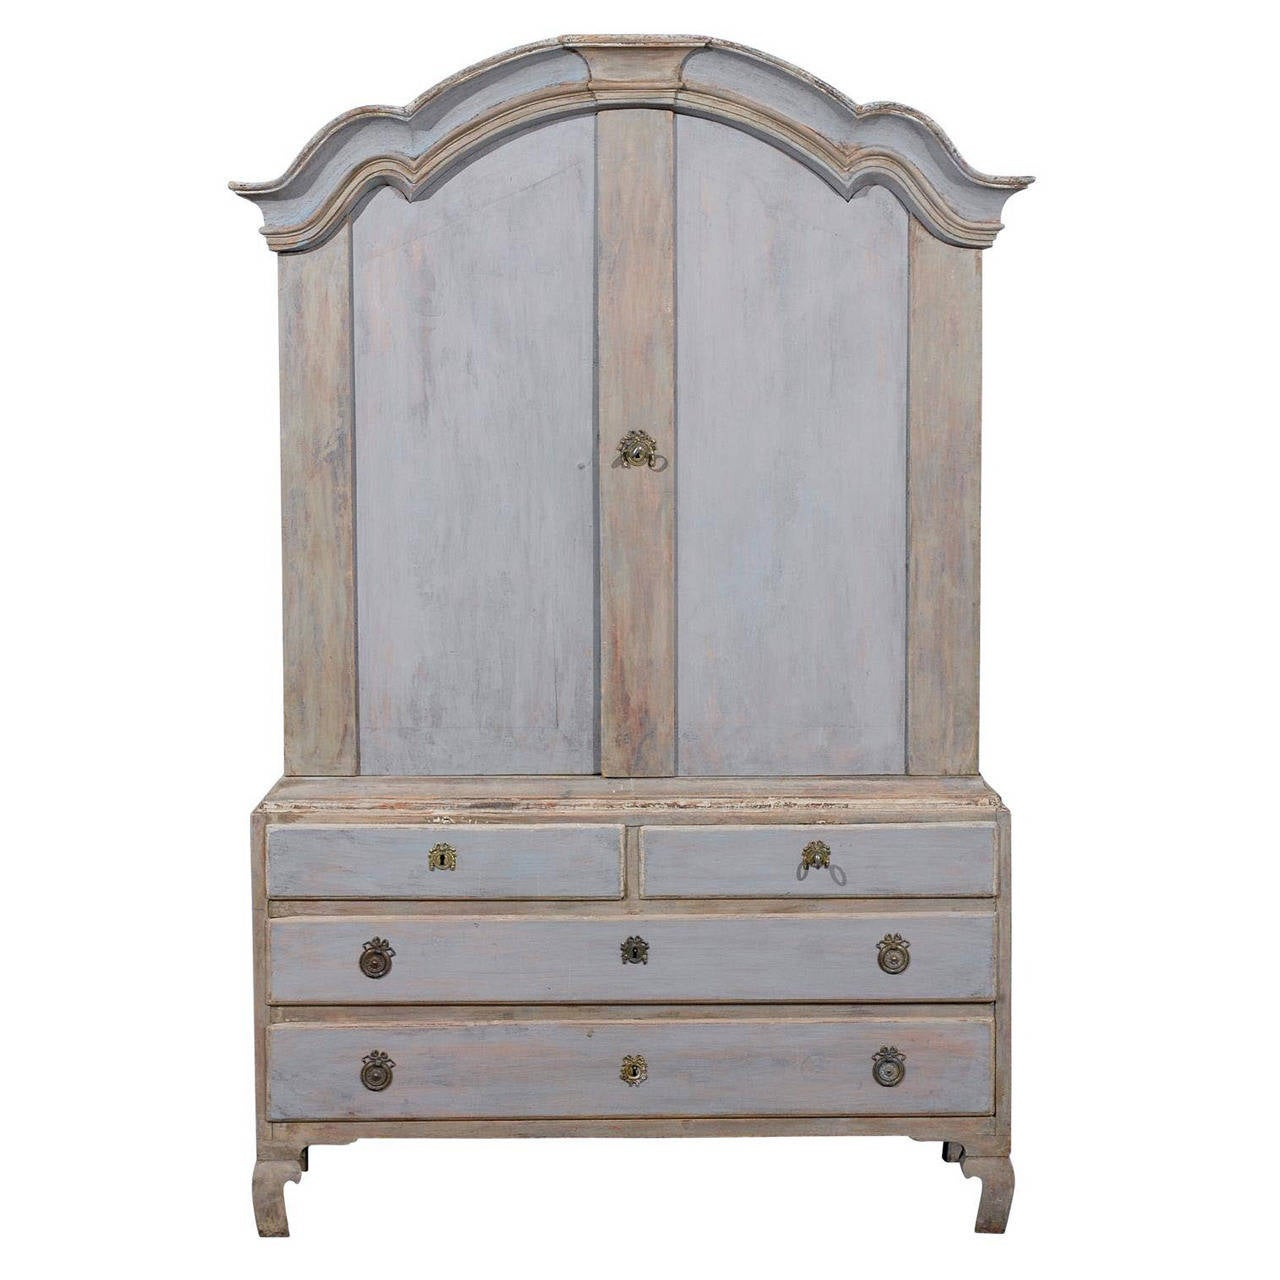 Swedish 18th Century Period Rococo Linen Press